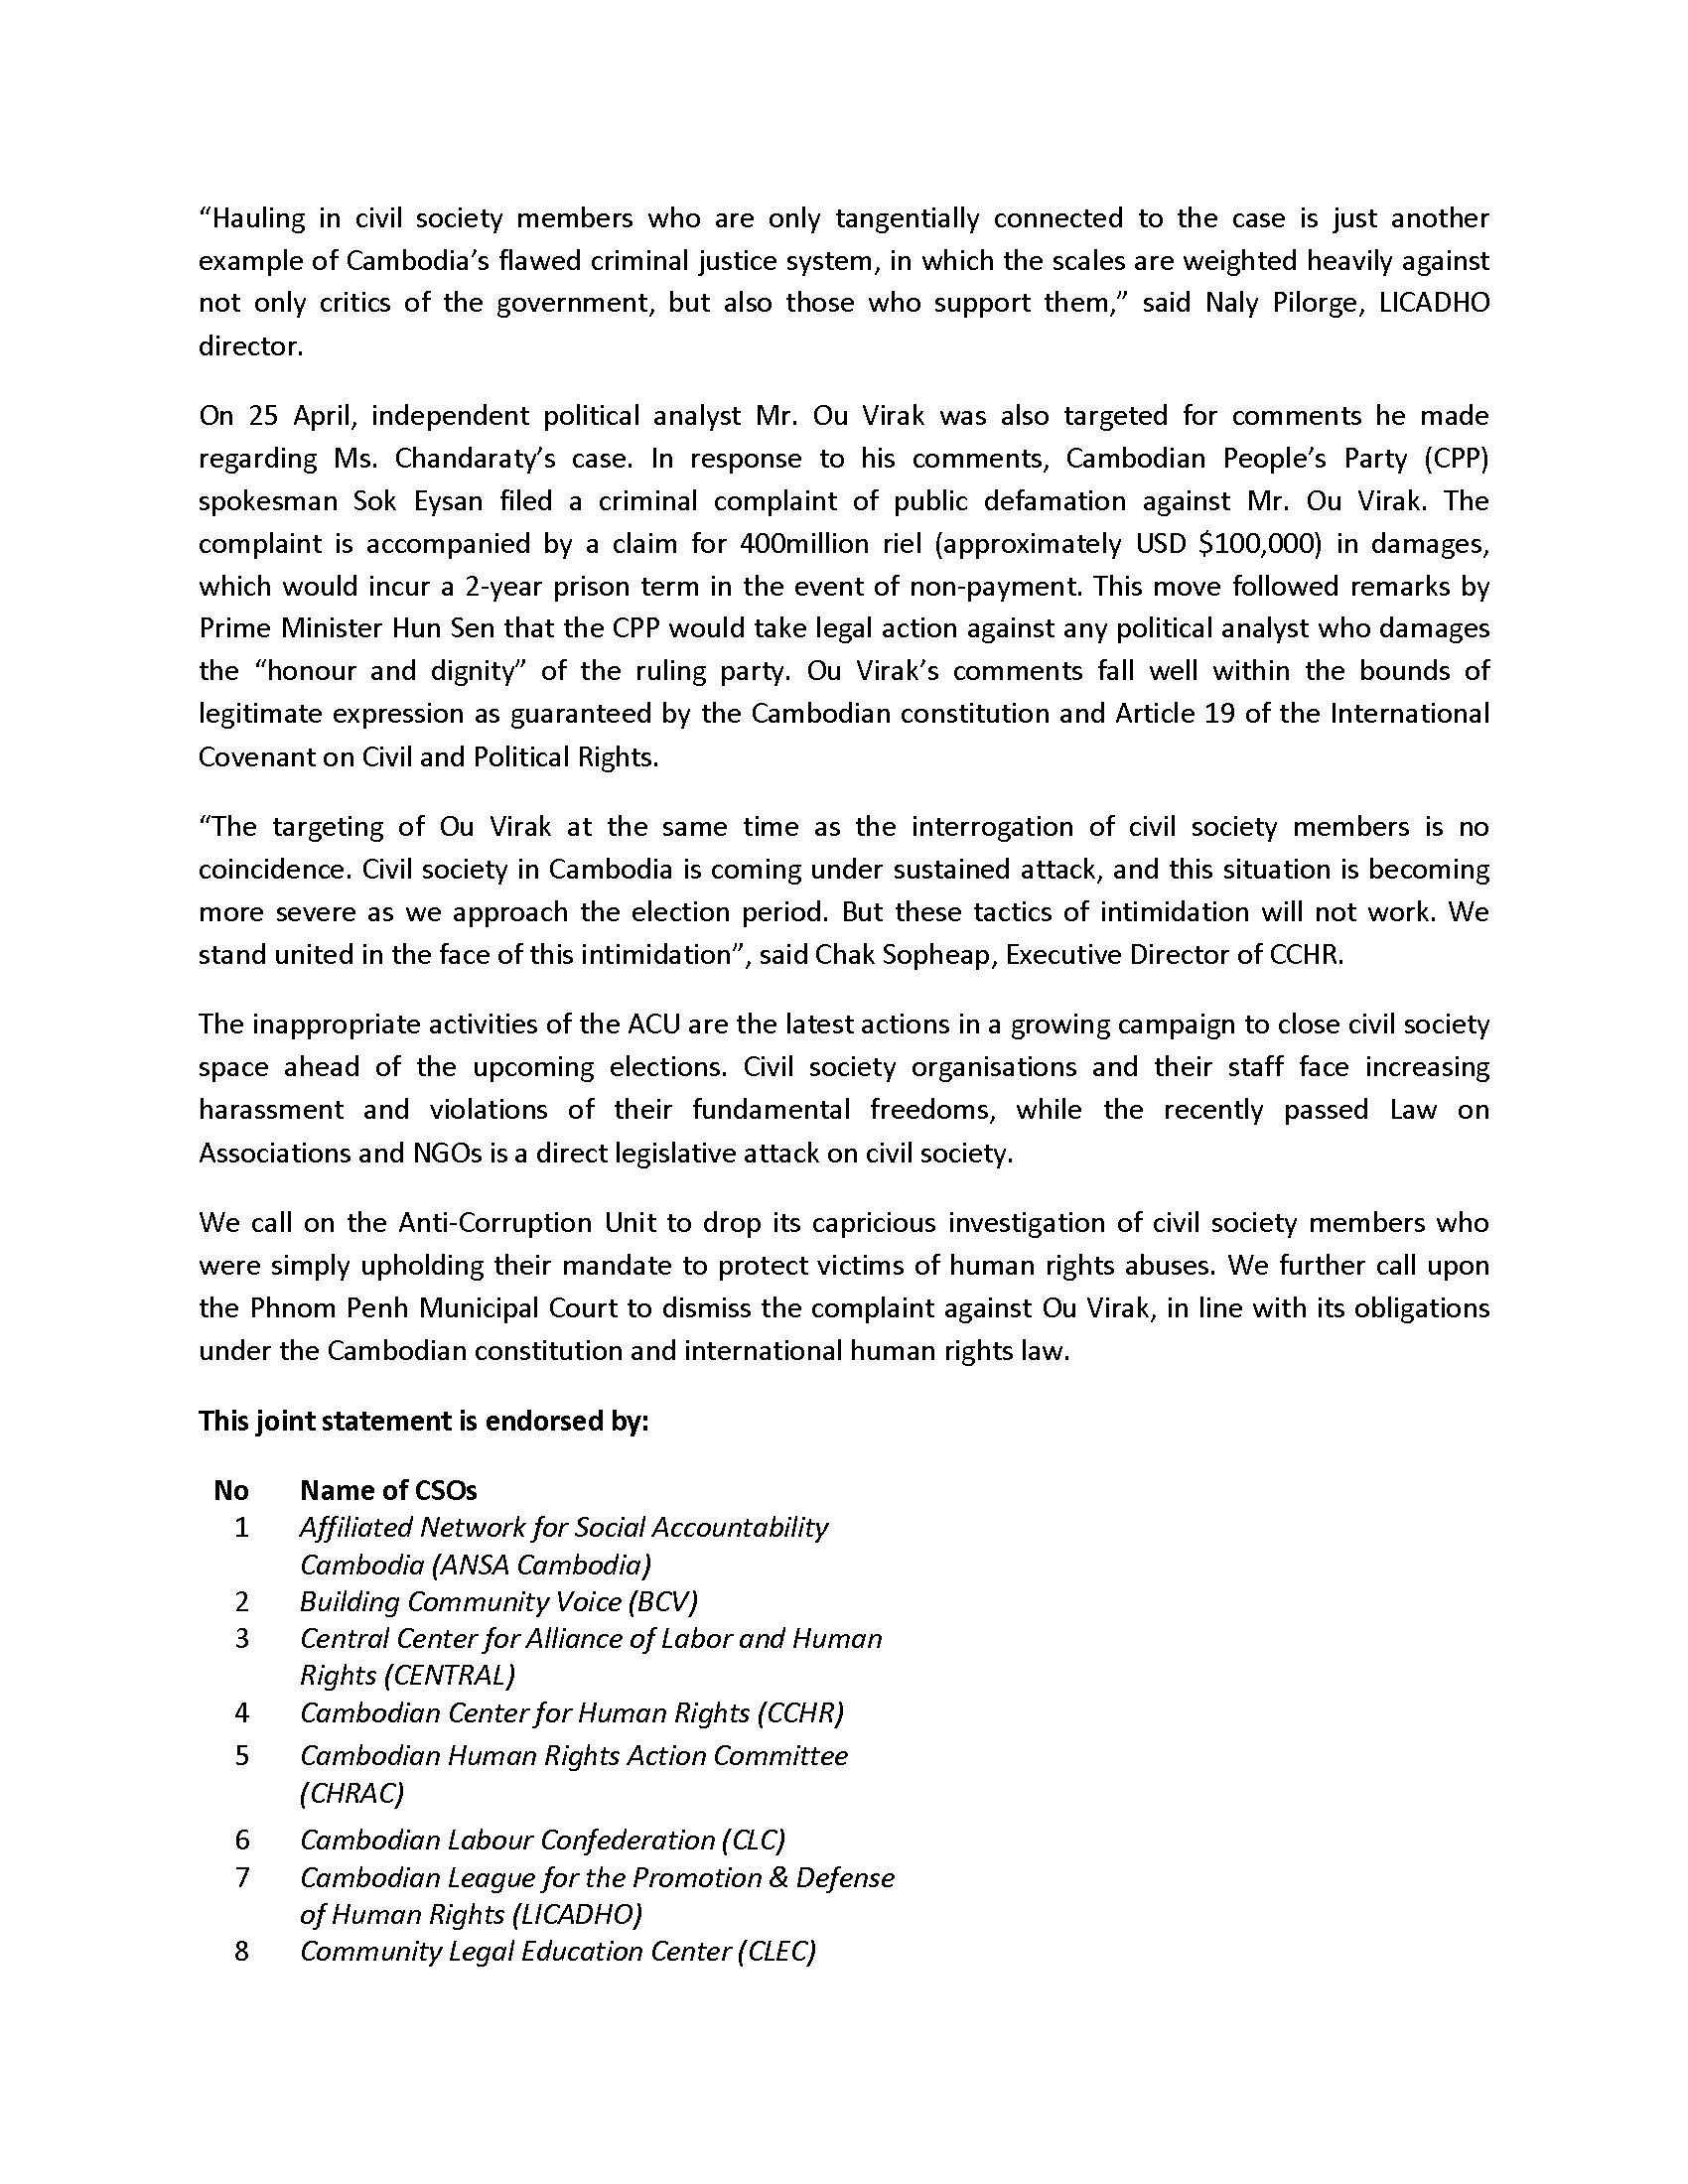 402Joint Press Release - CSOs call upon the authorities to immediately cease harrassment of human rights defenders _(ENG)-2_Page_2